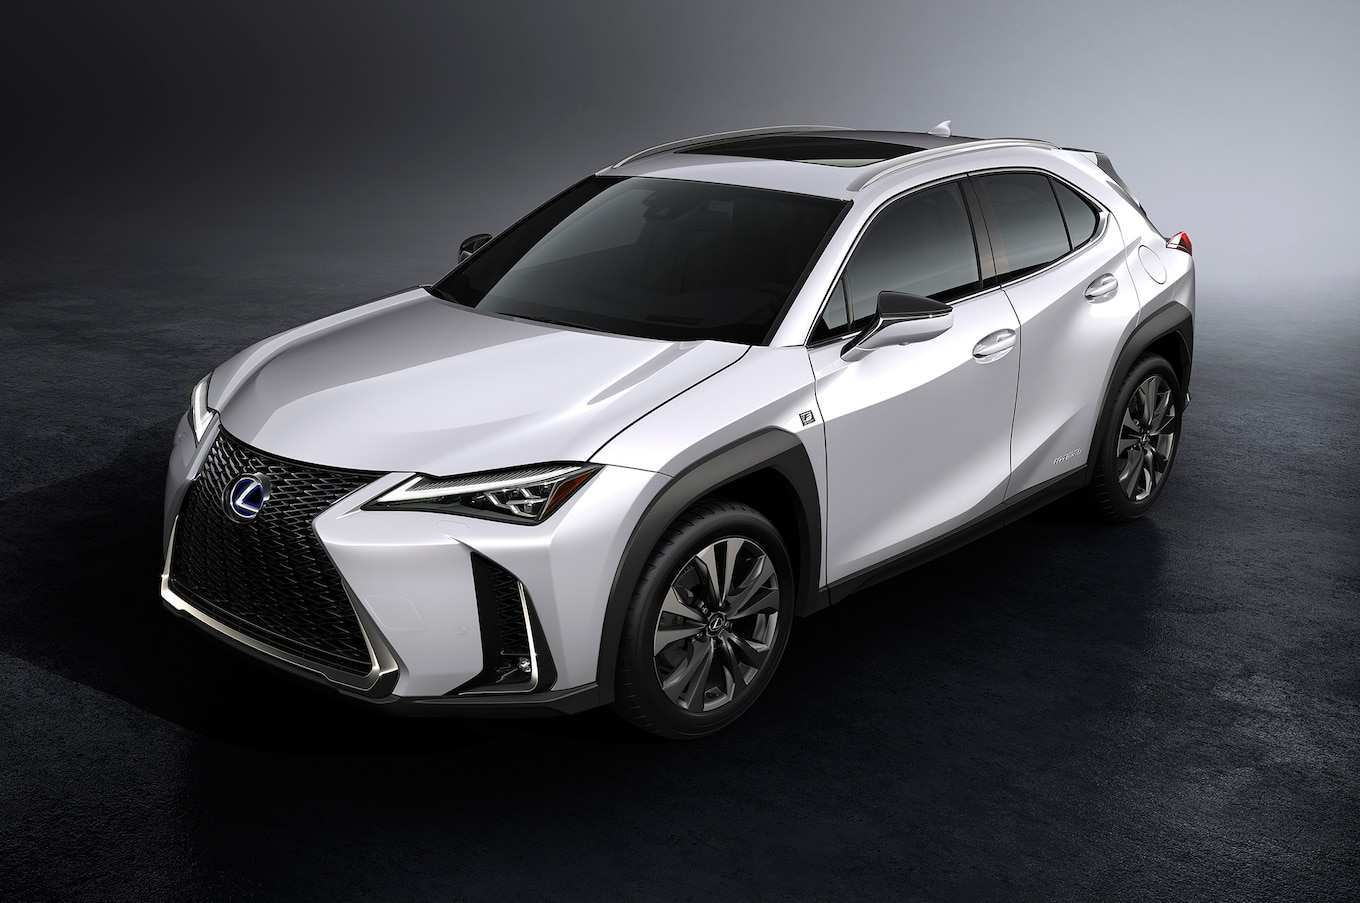 23 All New Best Lexus Ux 2019 Specs And Review Specs and Review with Best Lexus Ux 2019 Specs And Review